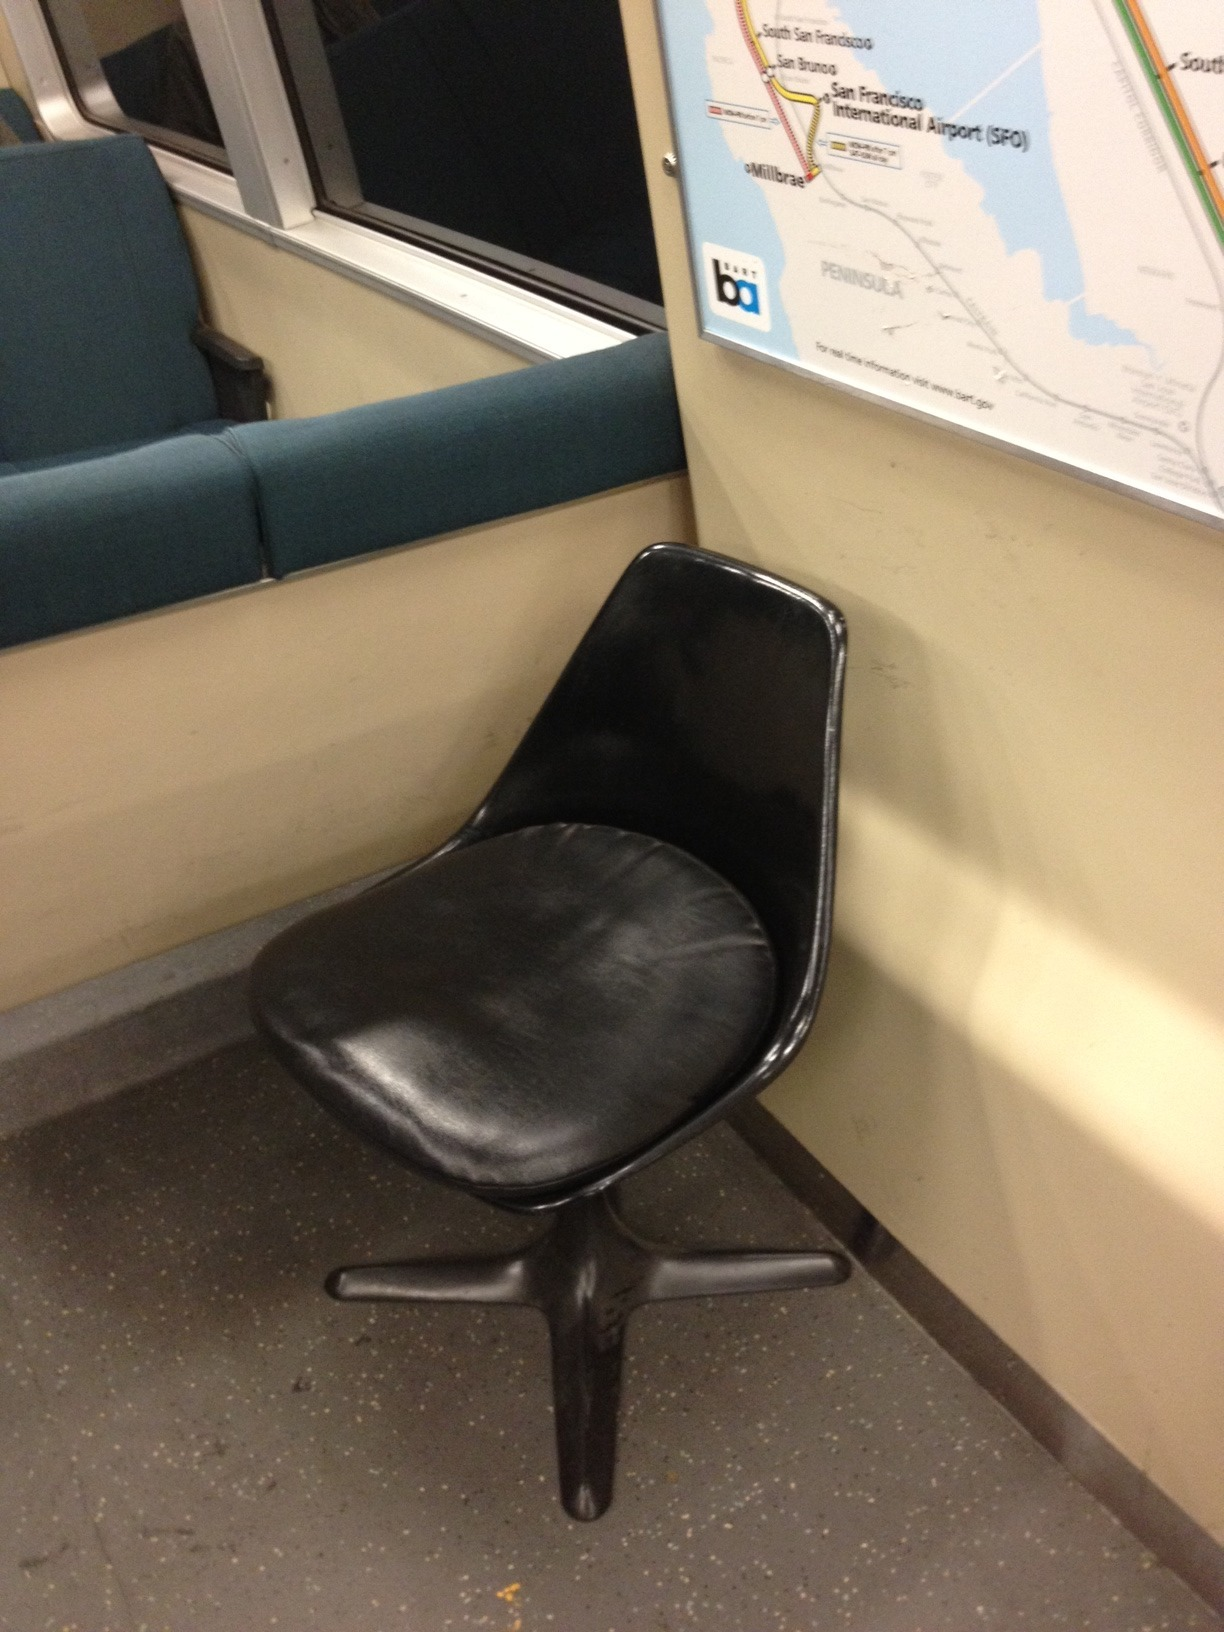 vicwomg:  The new BART seats are awesome! Who knew they would take design inspiration from the USS Enterprise and install vintage Burke 115 fiberglass swivel chairs!  This is amazing!